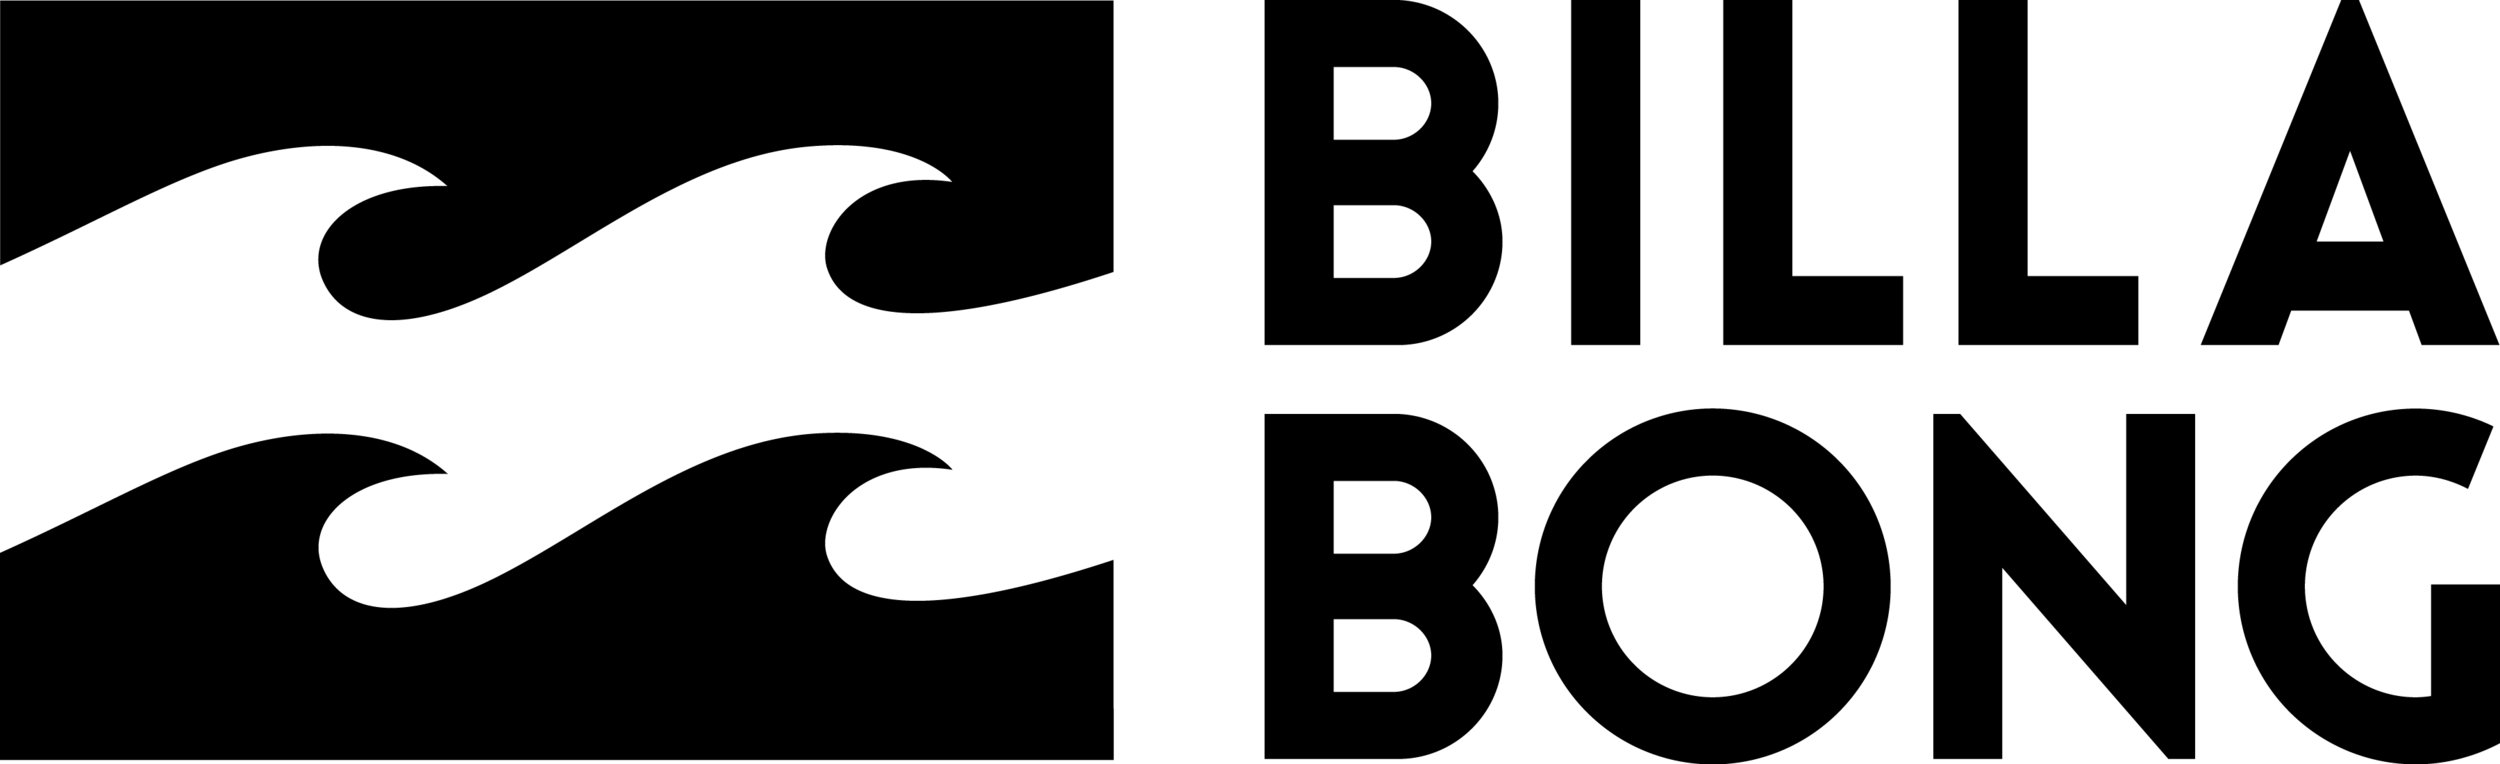 Billabong_logo.png